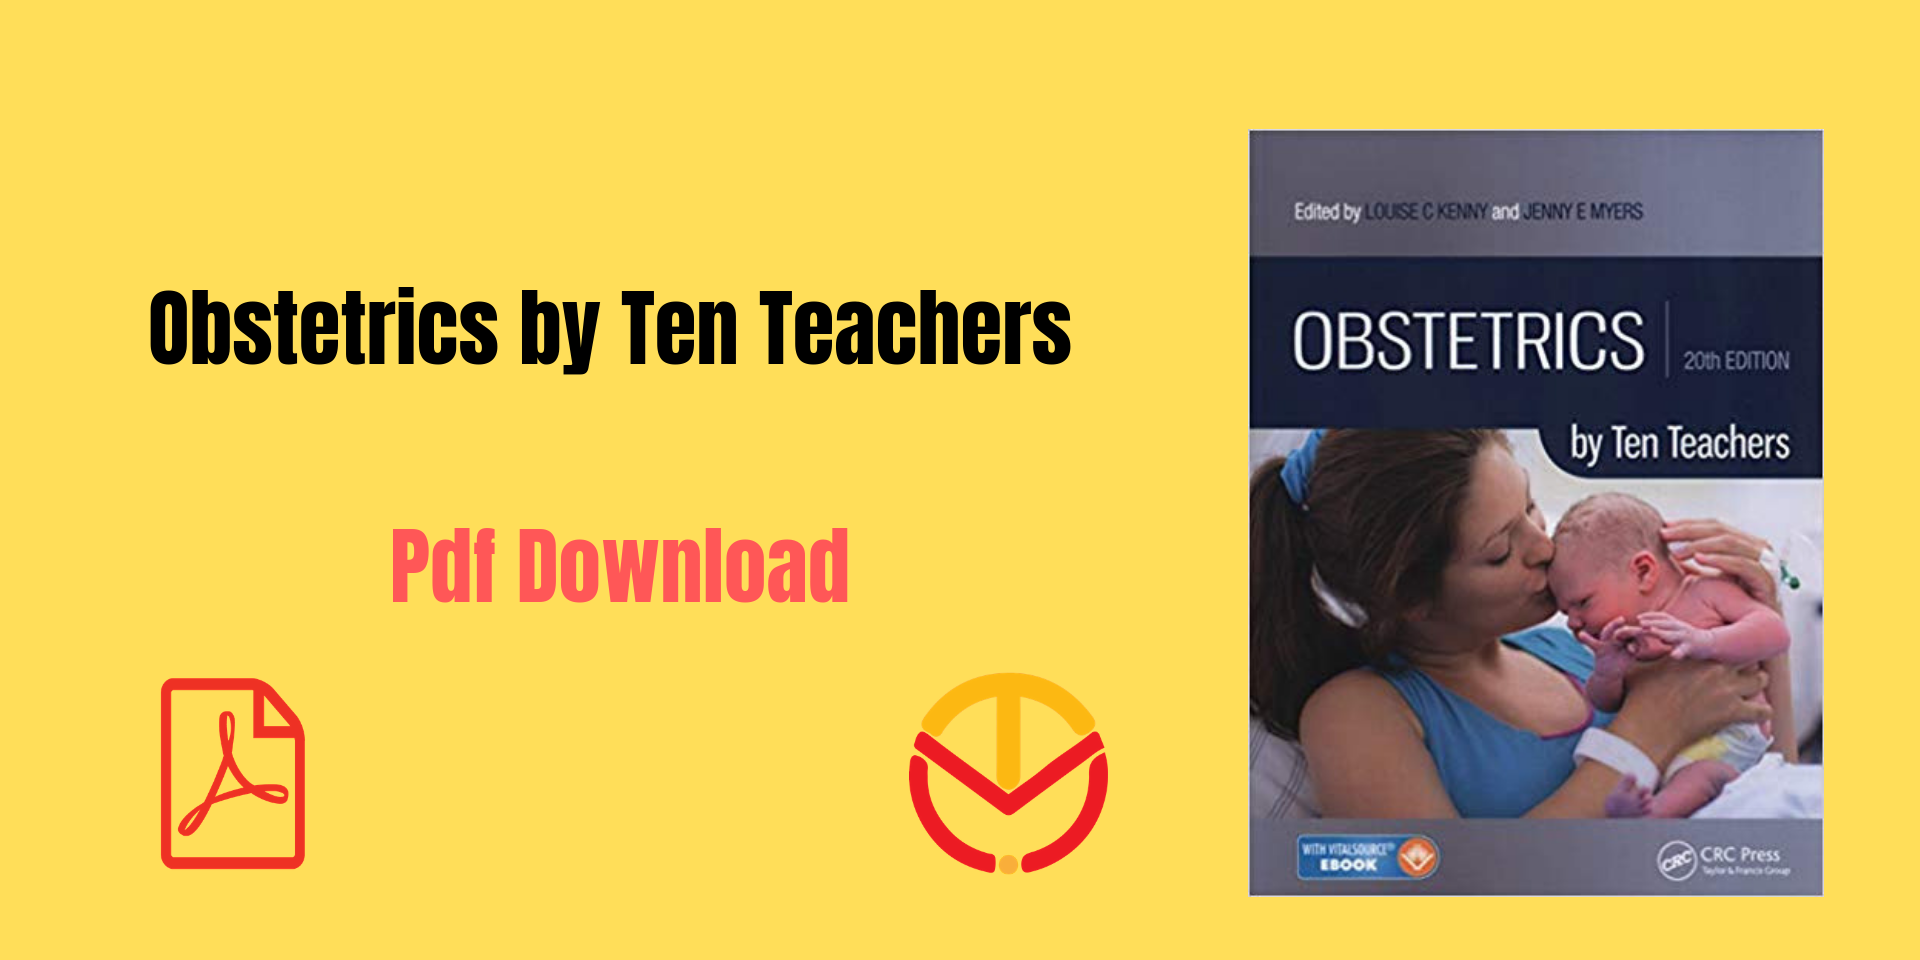 Obstetrics by Ten Teachers pdf